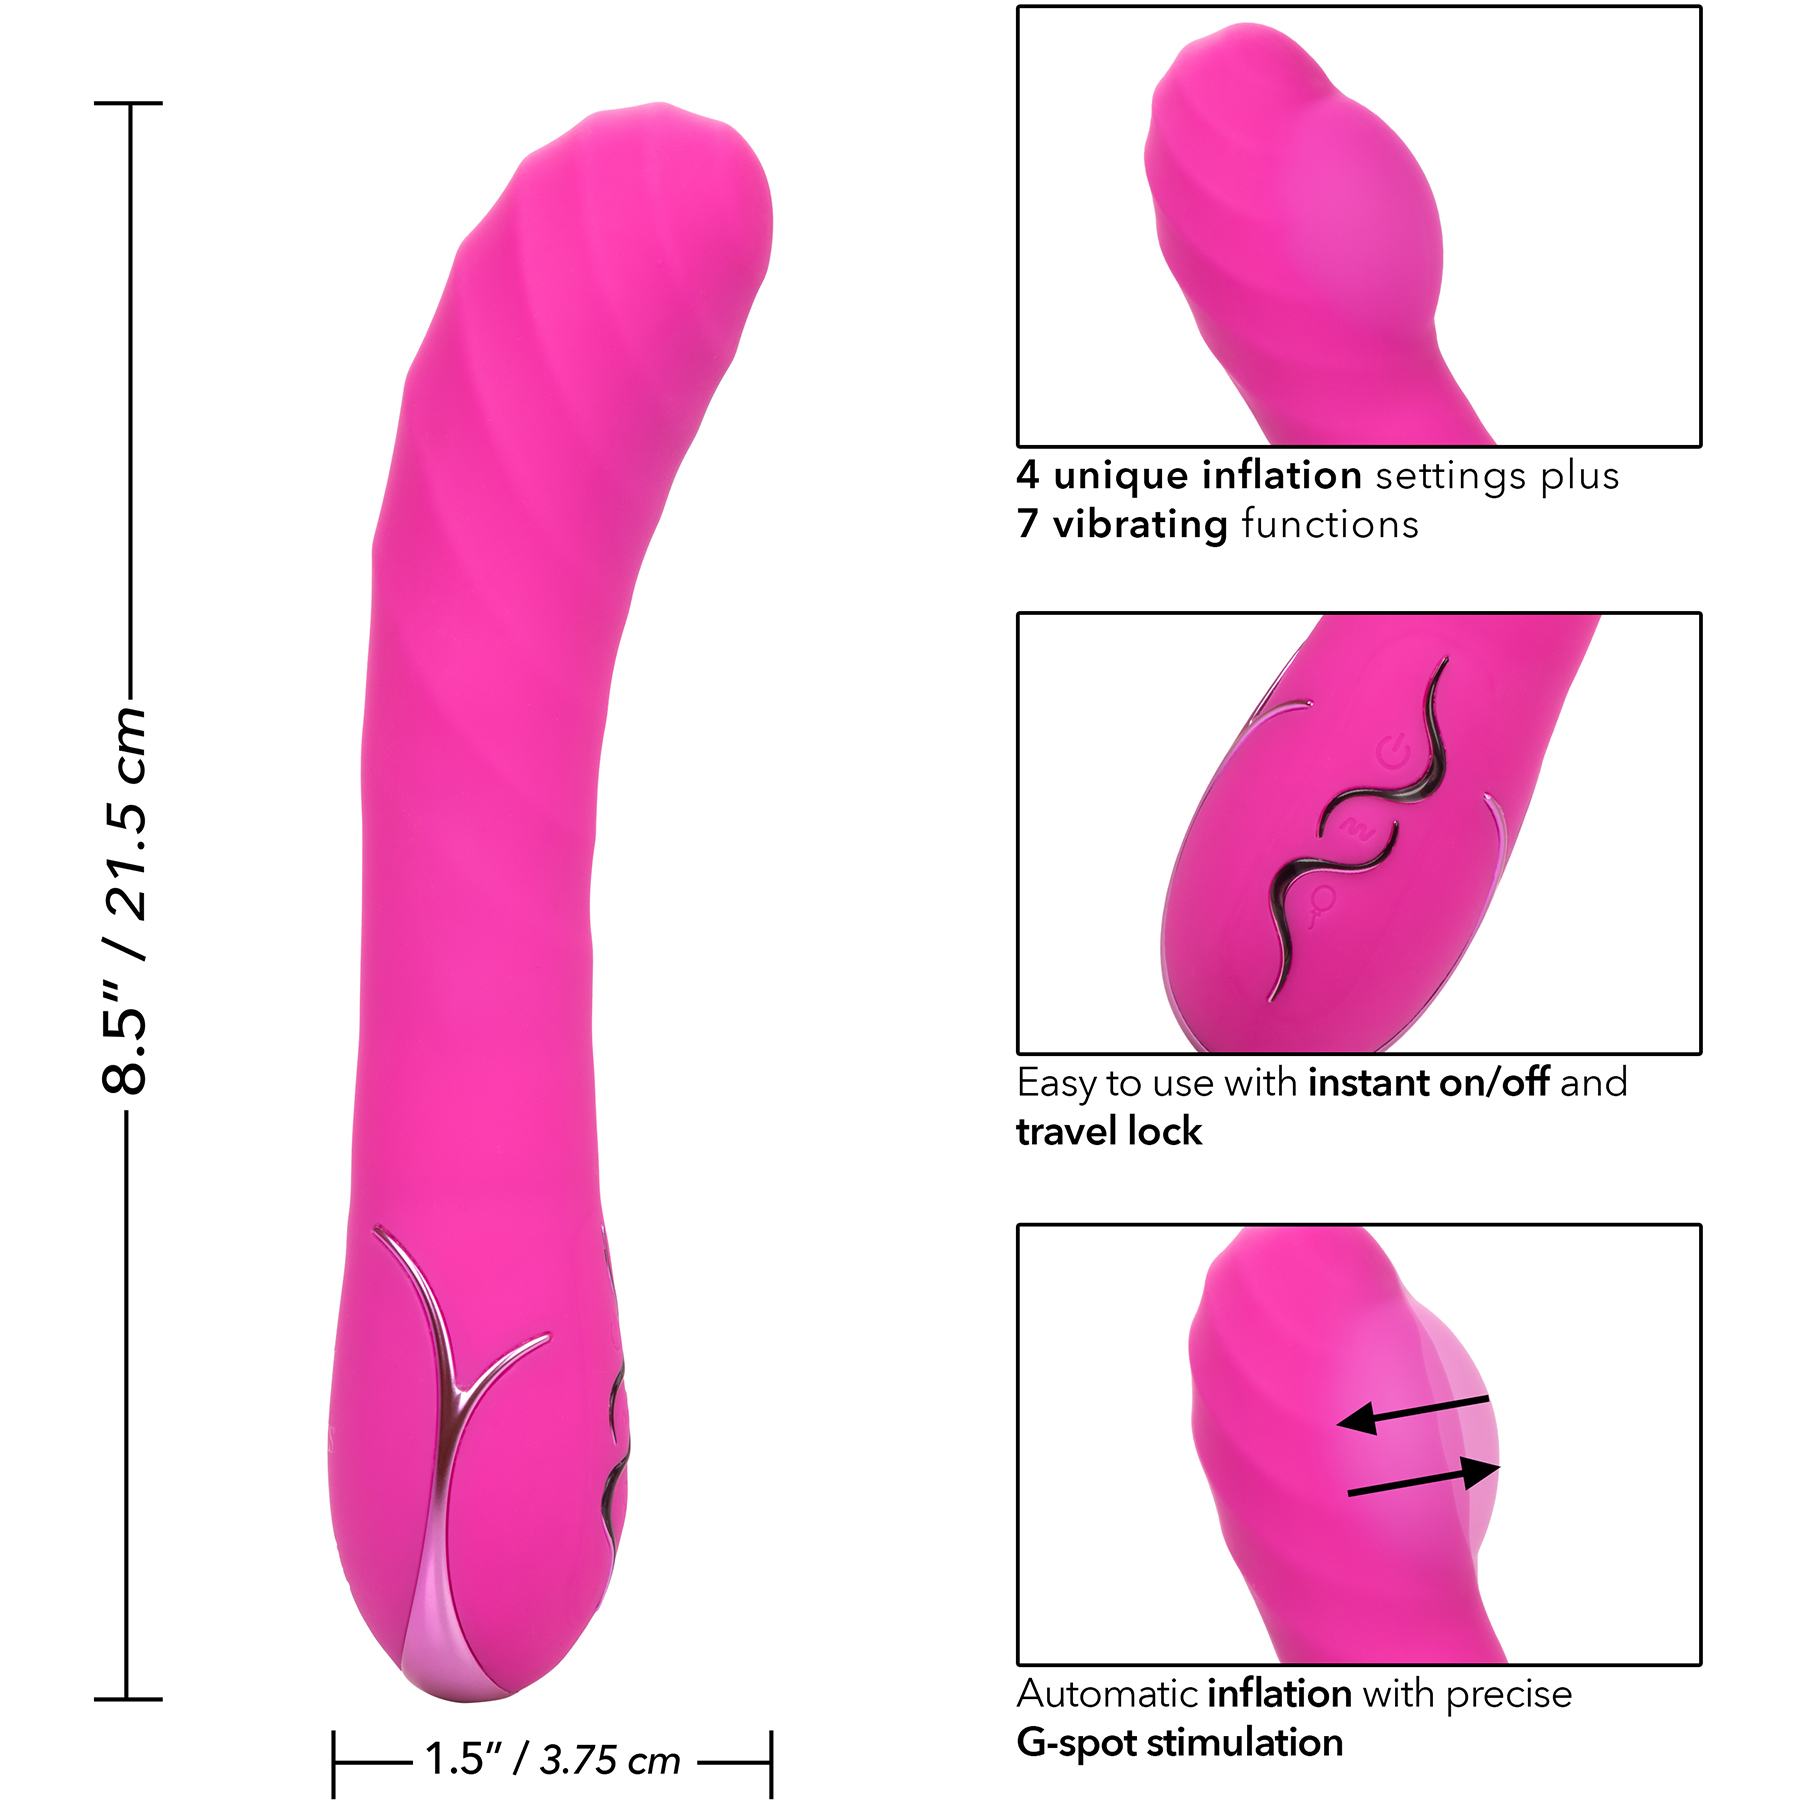 Insatiable G Inflatable G-Wand Silicone Rechargeable G-Spot Vibrator - Measurements